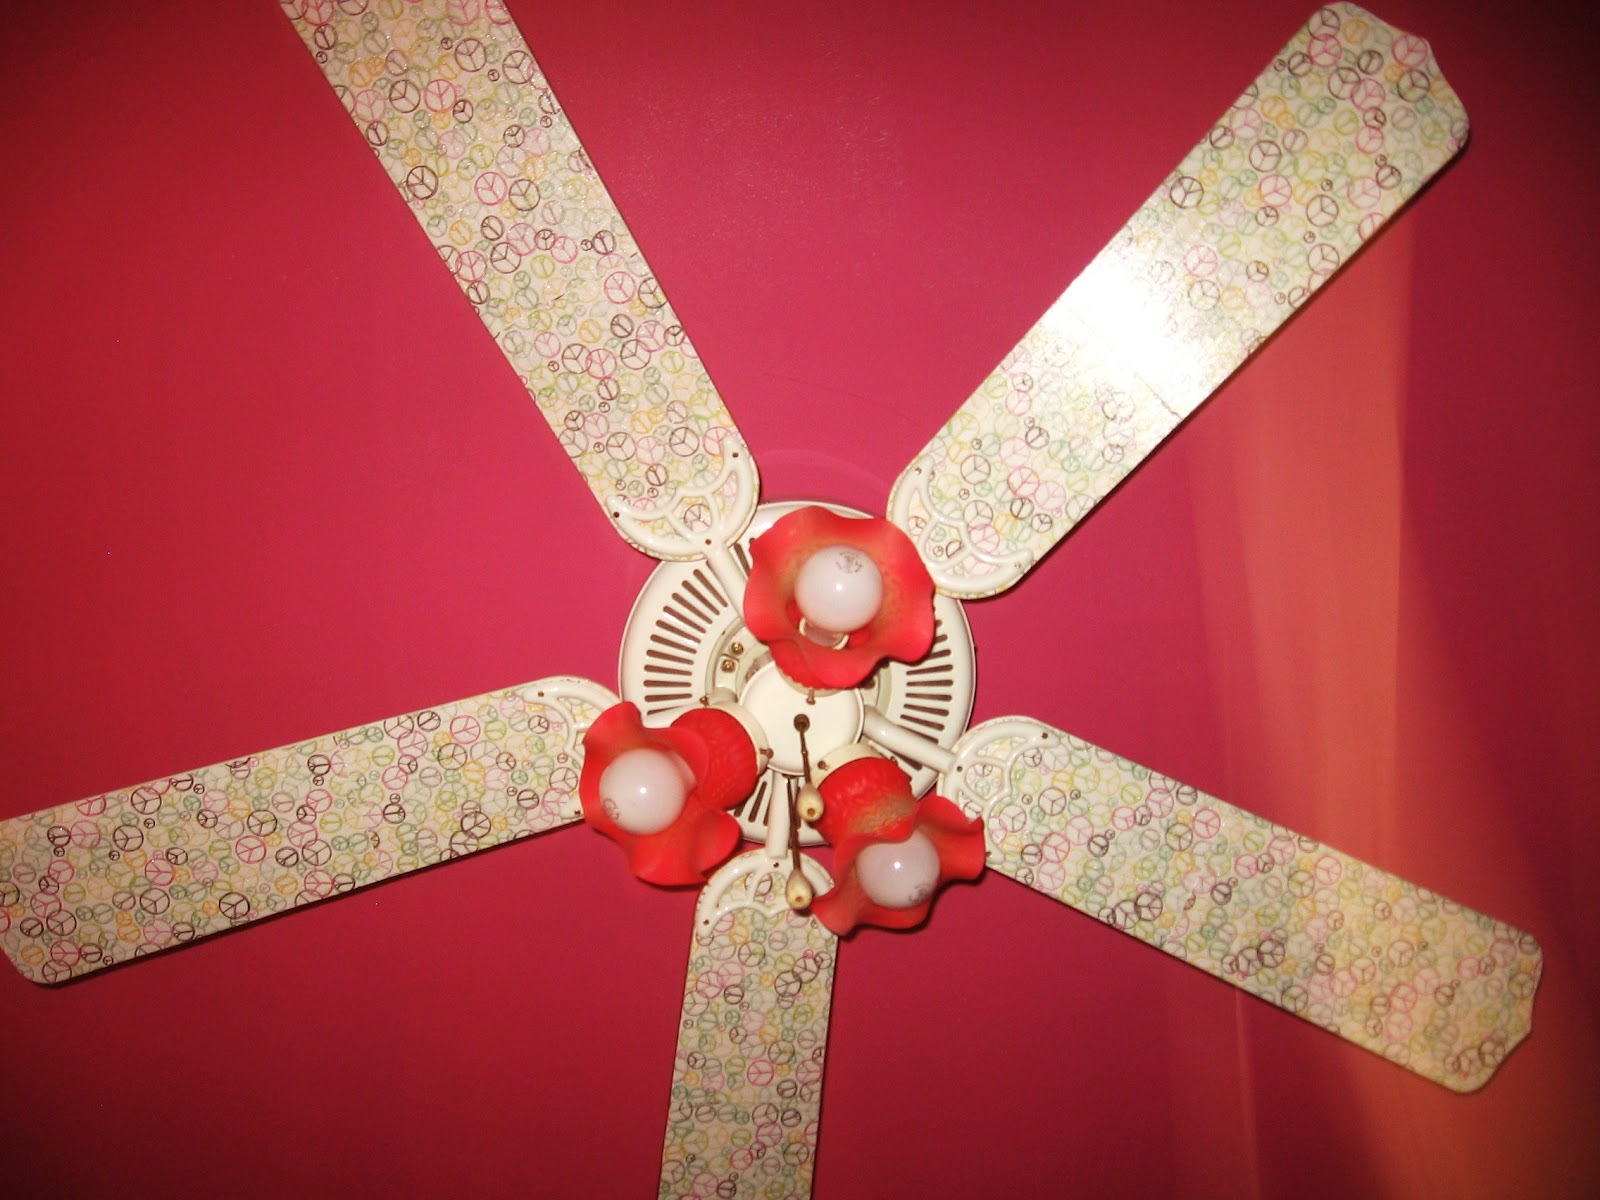 Life with Laken DIY Decoupage Ceiling Fan